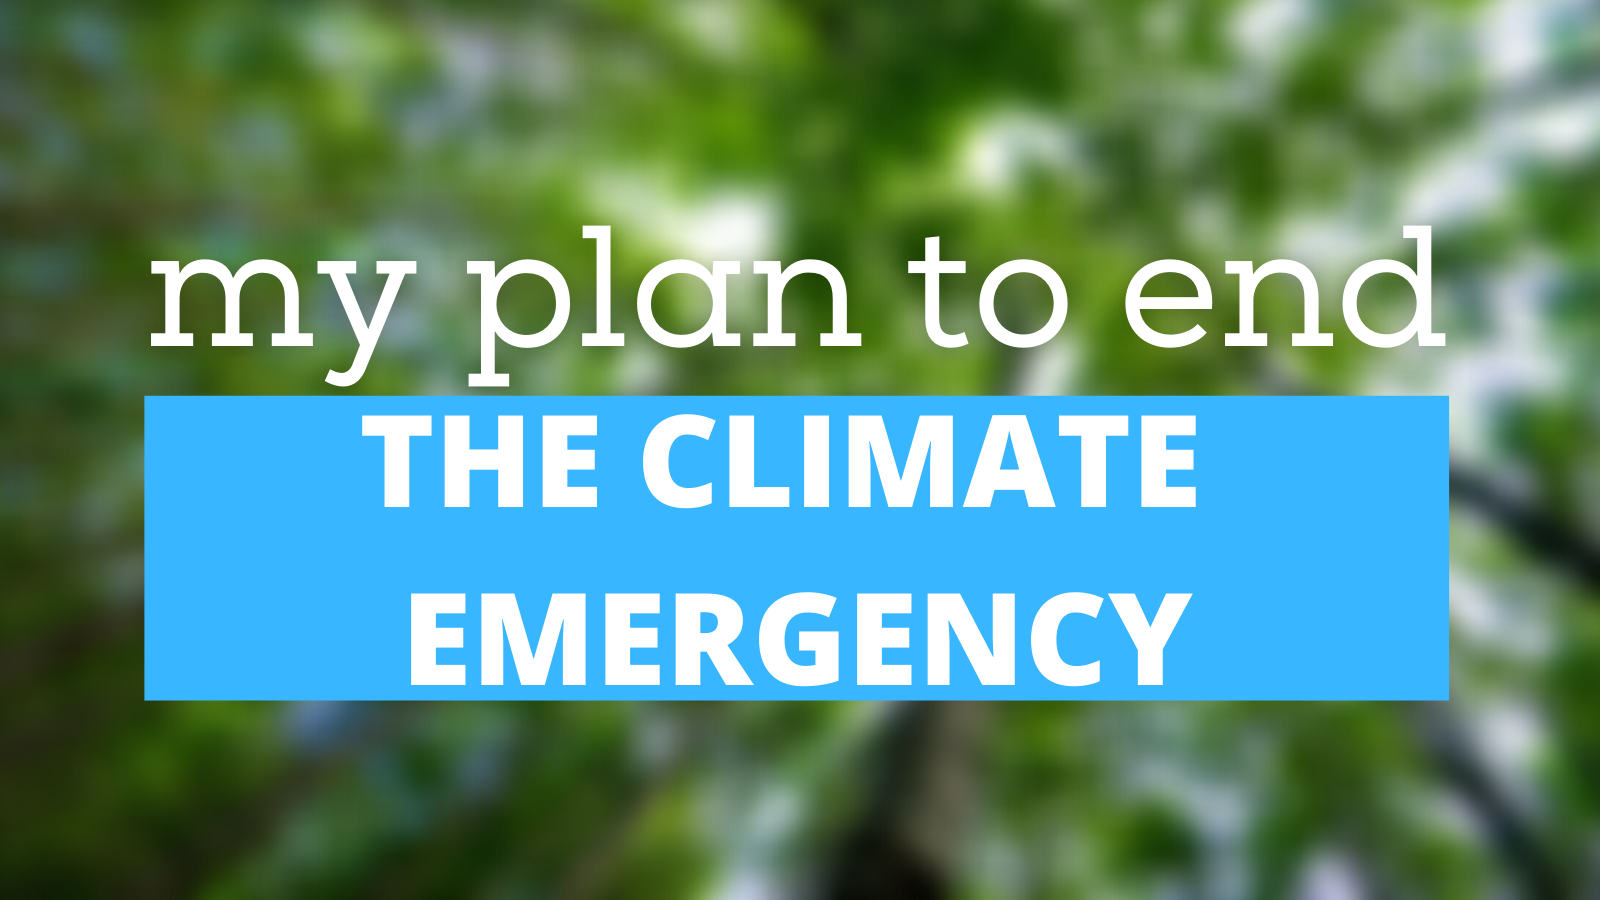 My plan to end the climate emergency